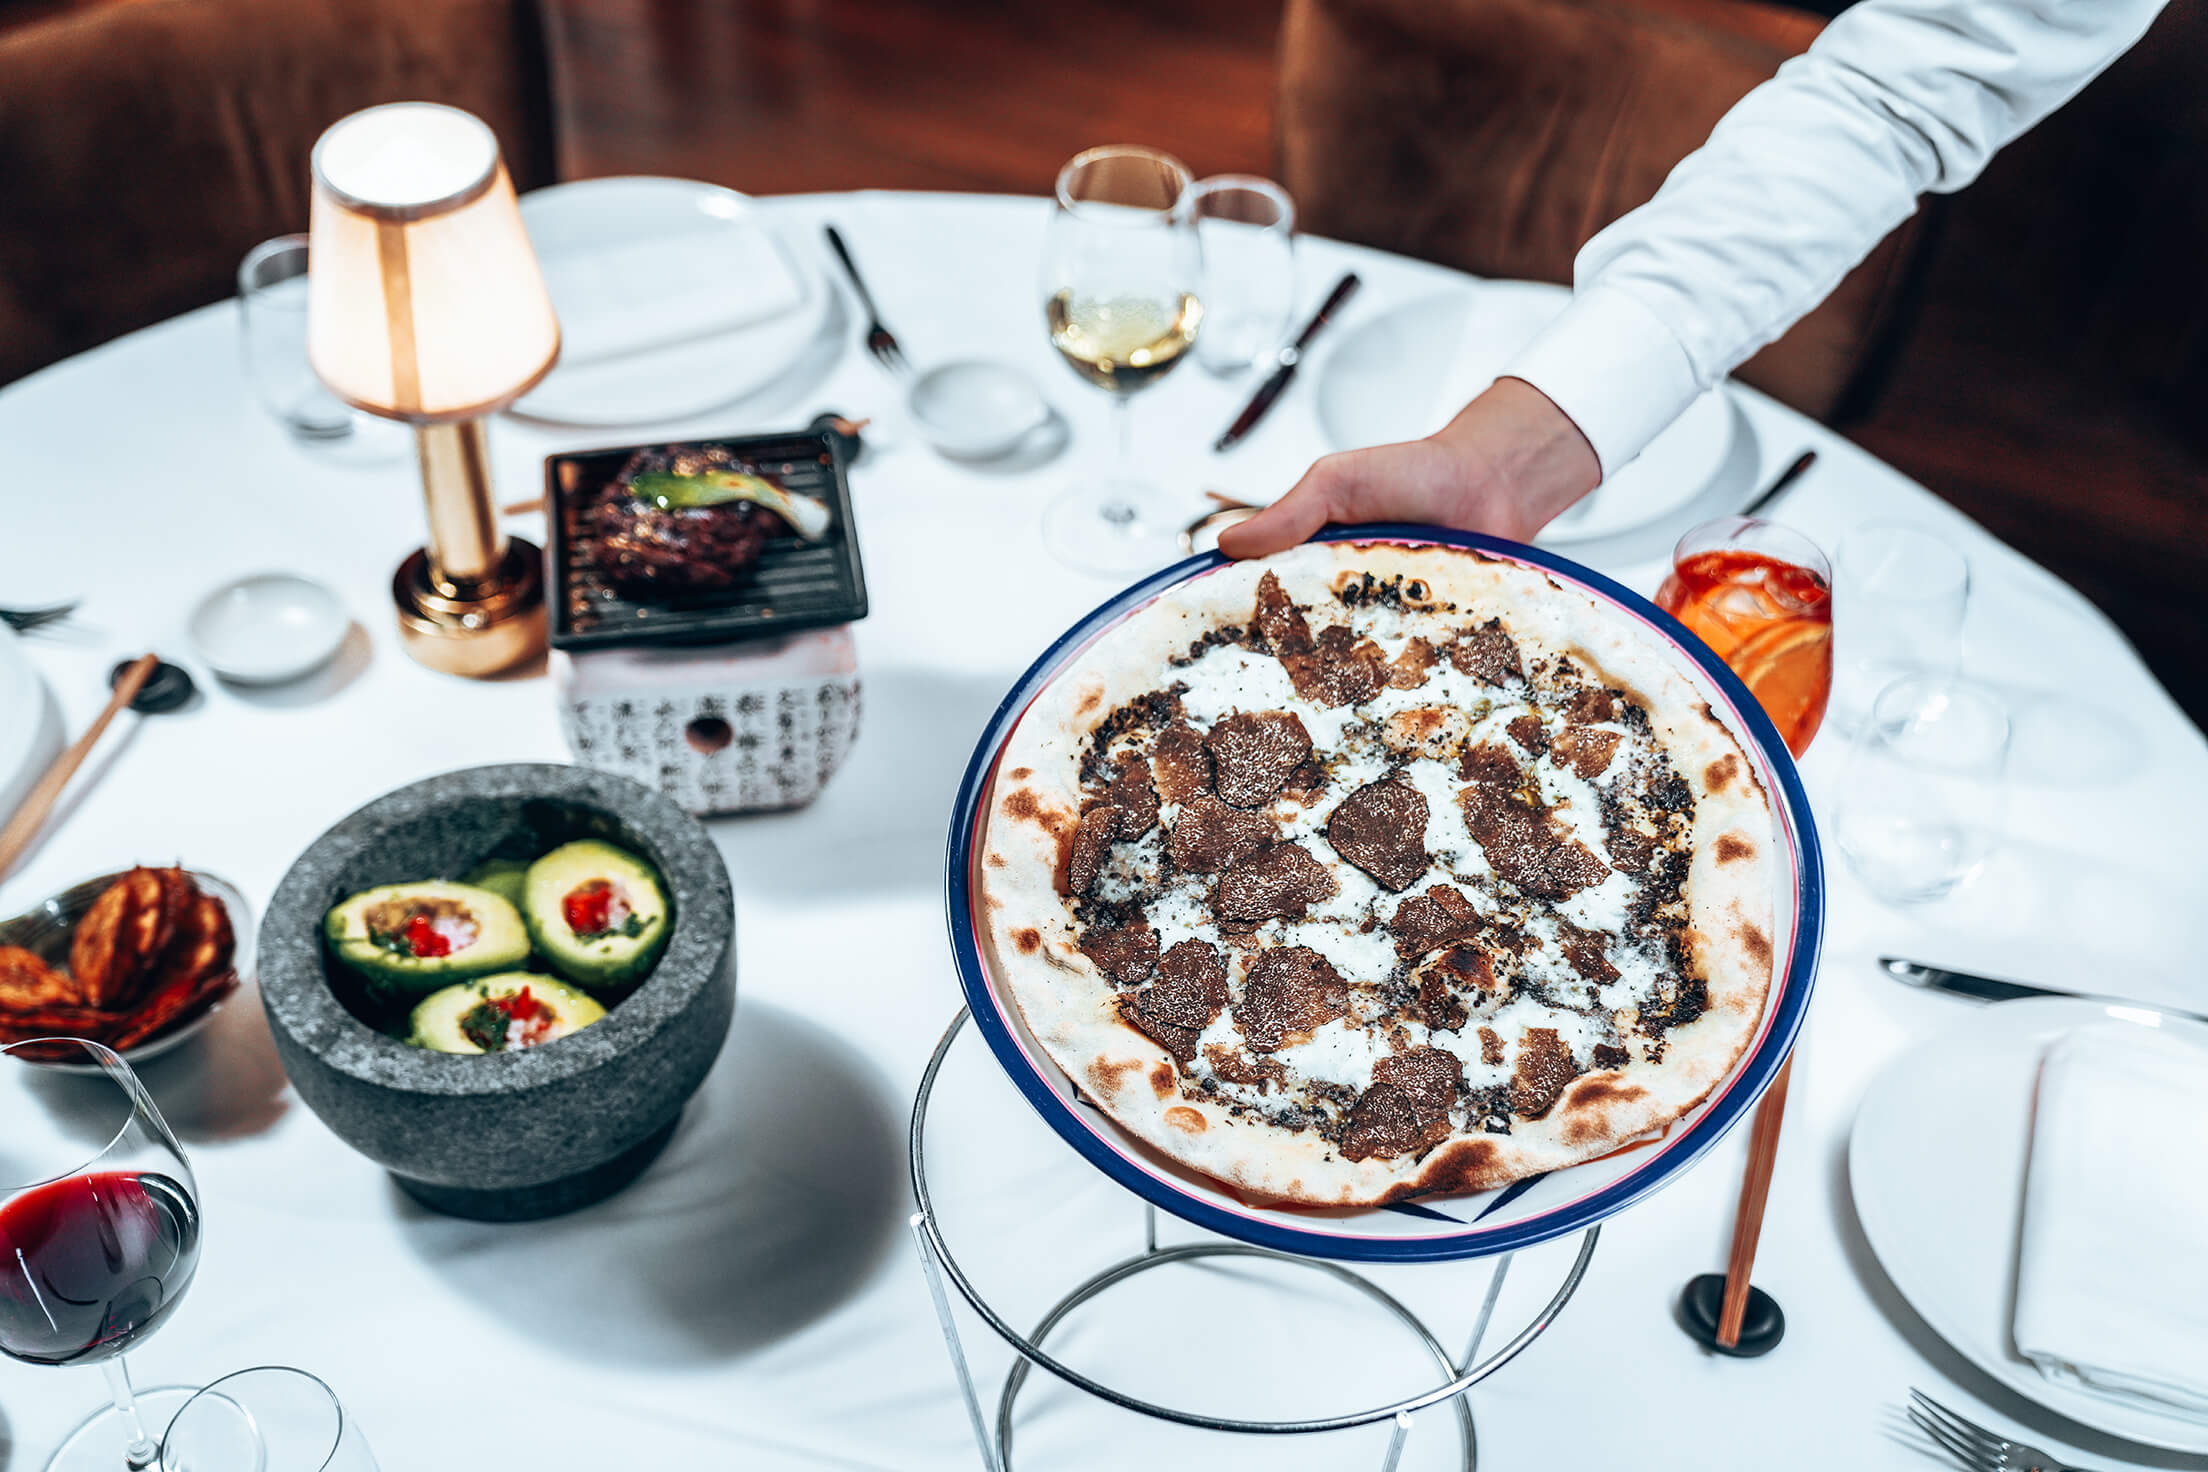 Pizza with truffle served